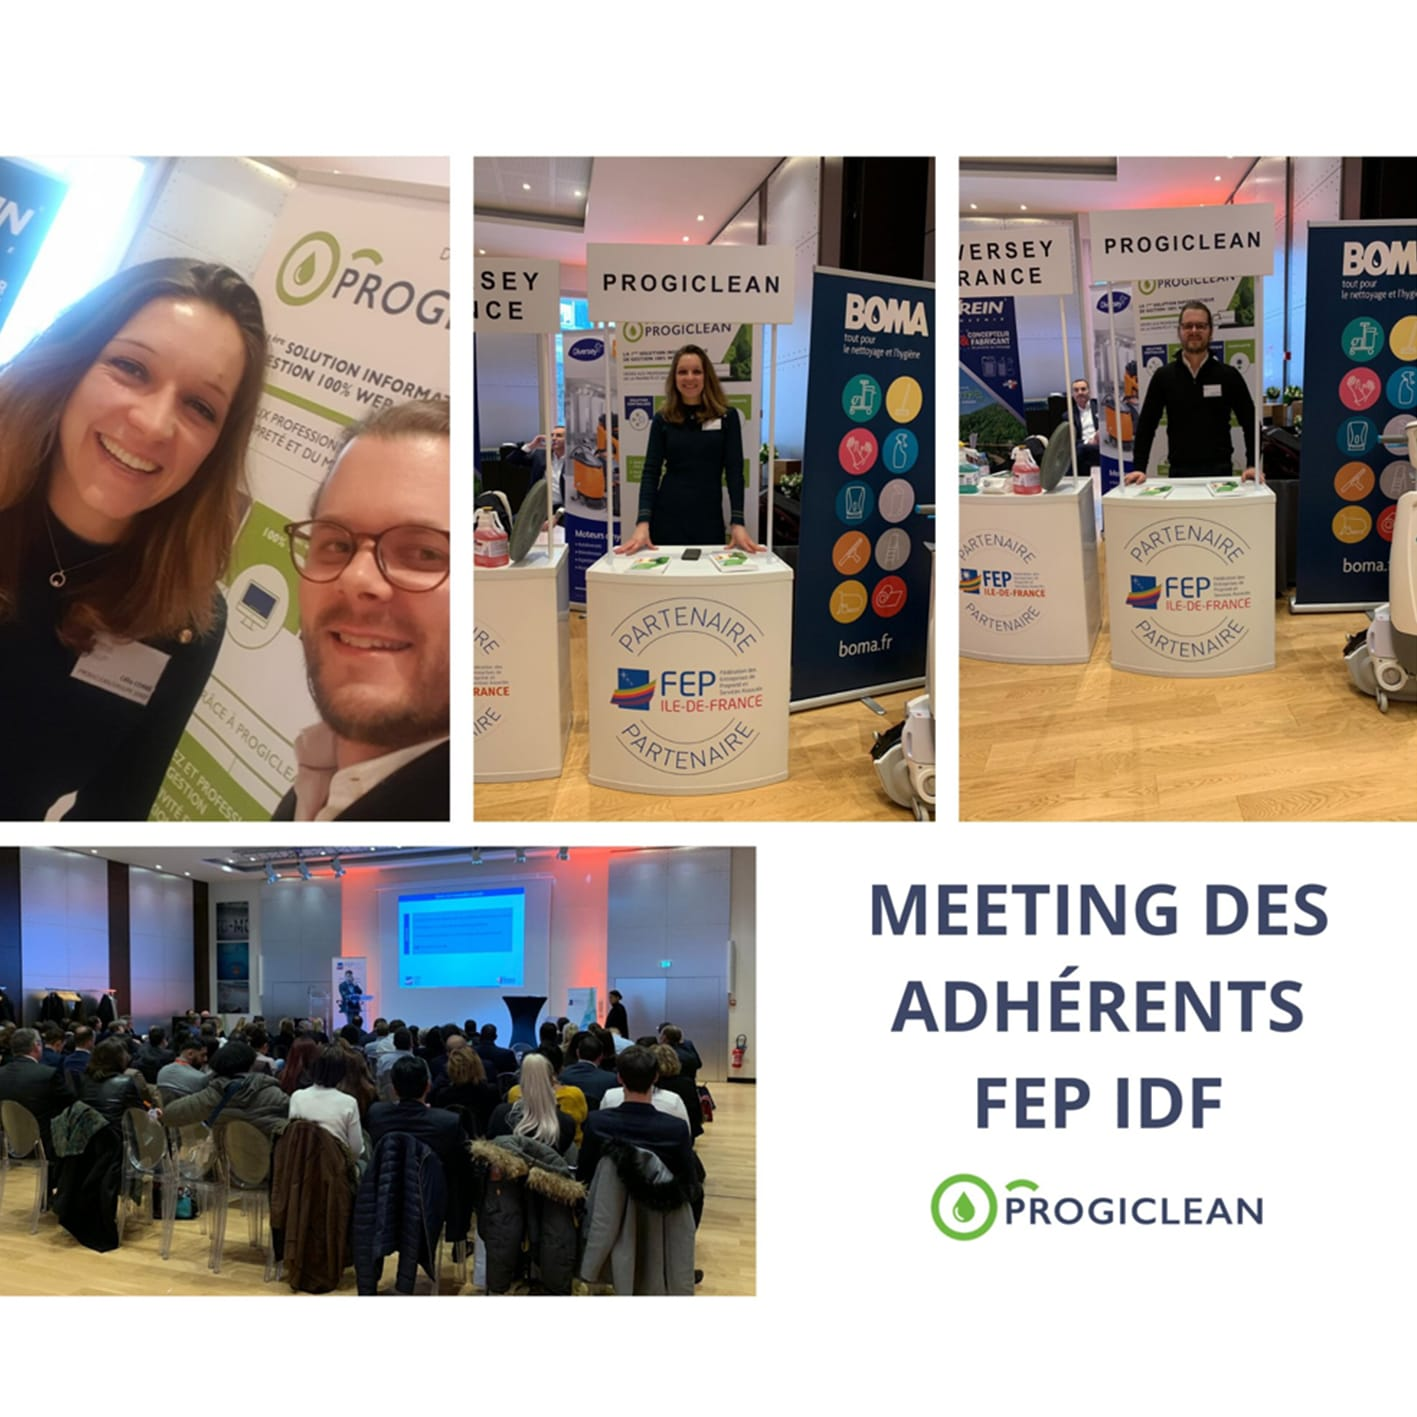 Meeting adhérents FEP Île-de-France